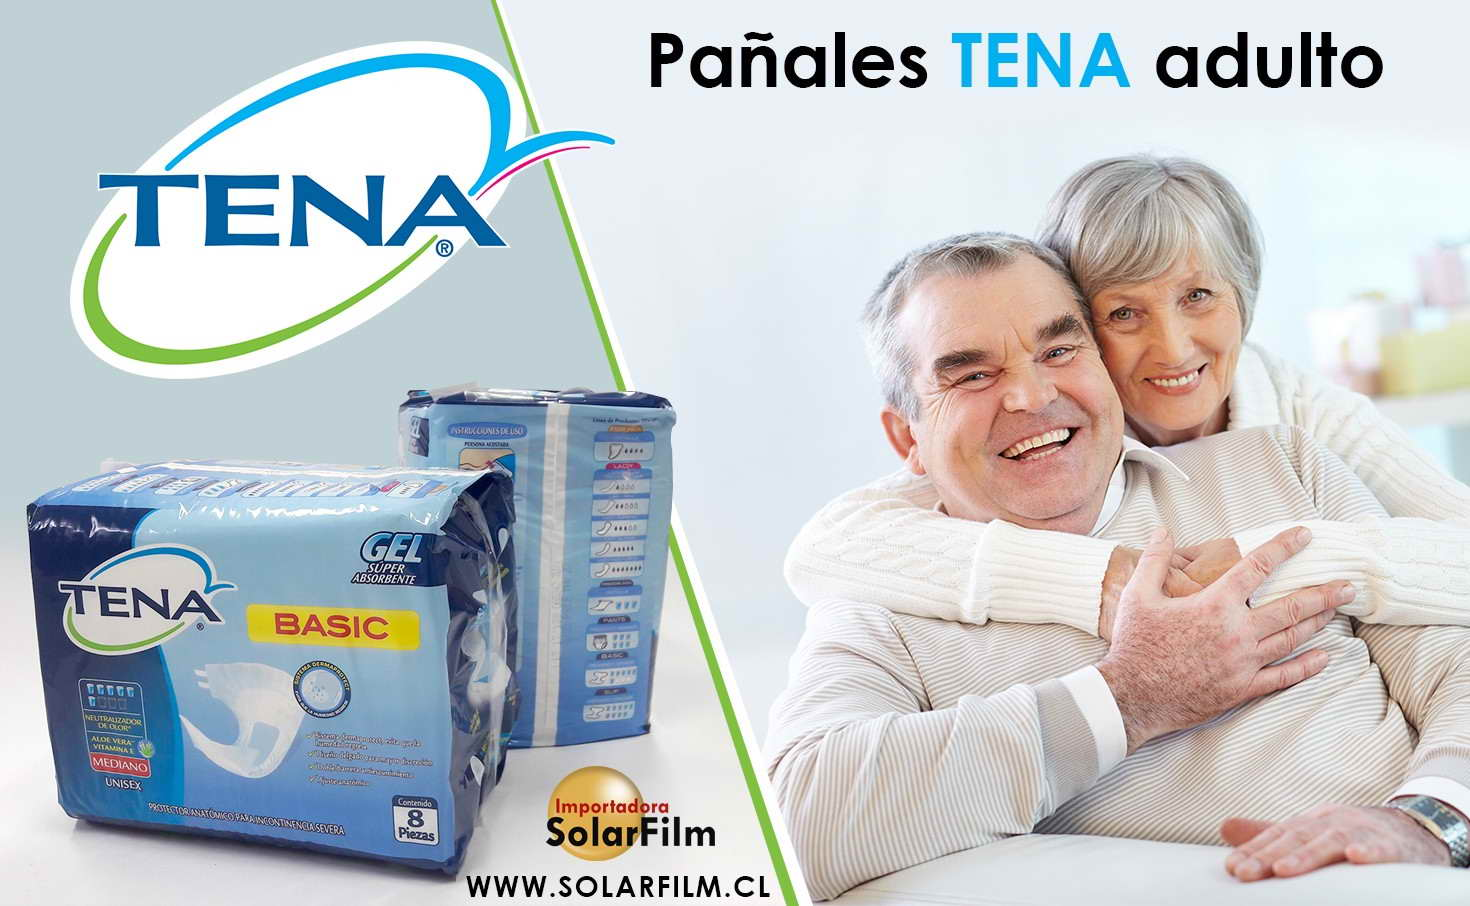 https://solarfilm.cl/84-panales-adulto-